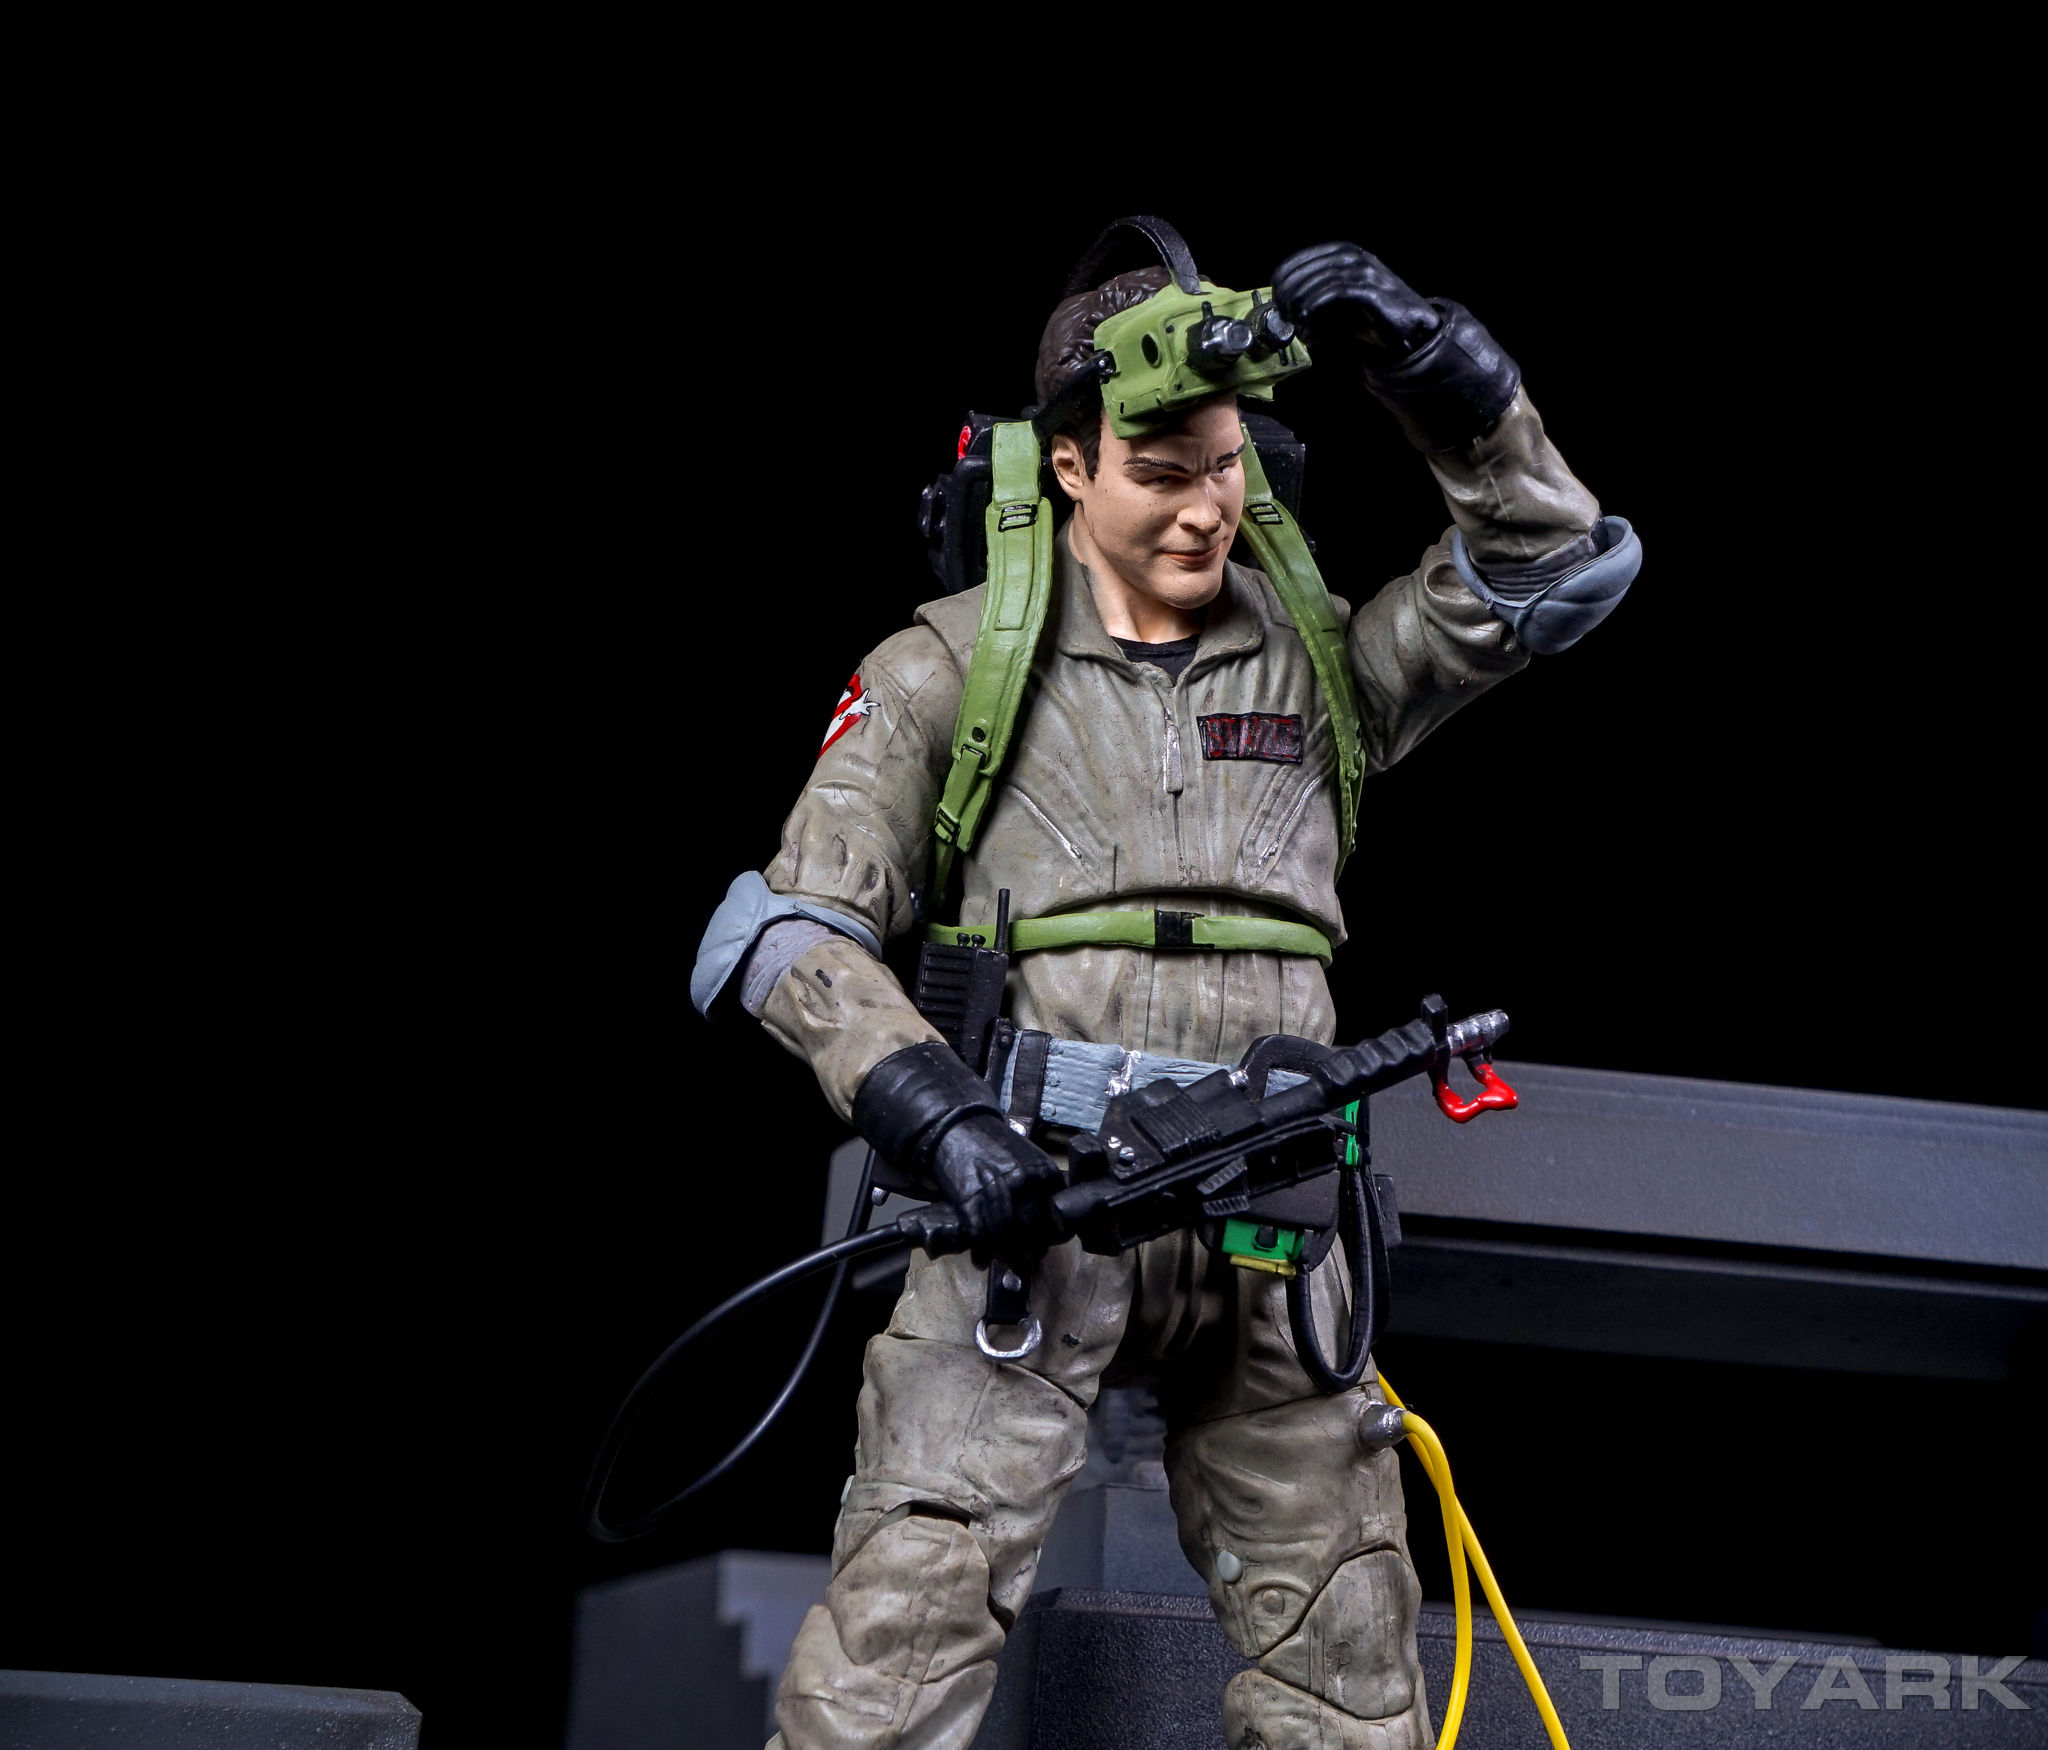 http://news.toyark.com/wp-content/uploads/sites/4/2016/05/DST-Ghostbusters-Select-Figures-062.jpg